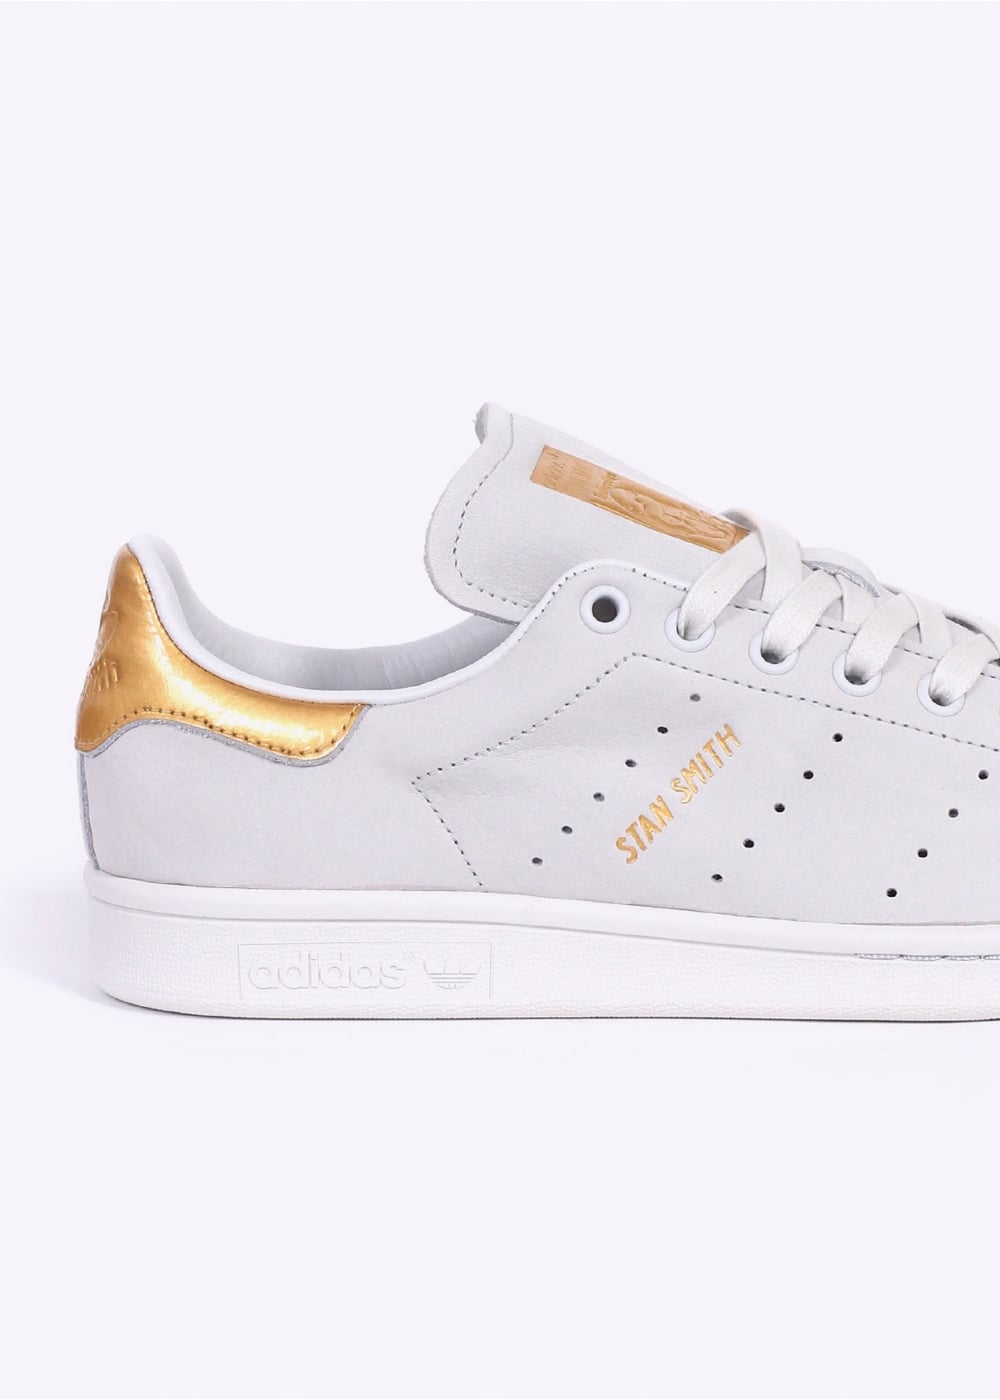 adidas stan smith 1st copy